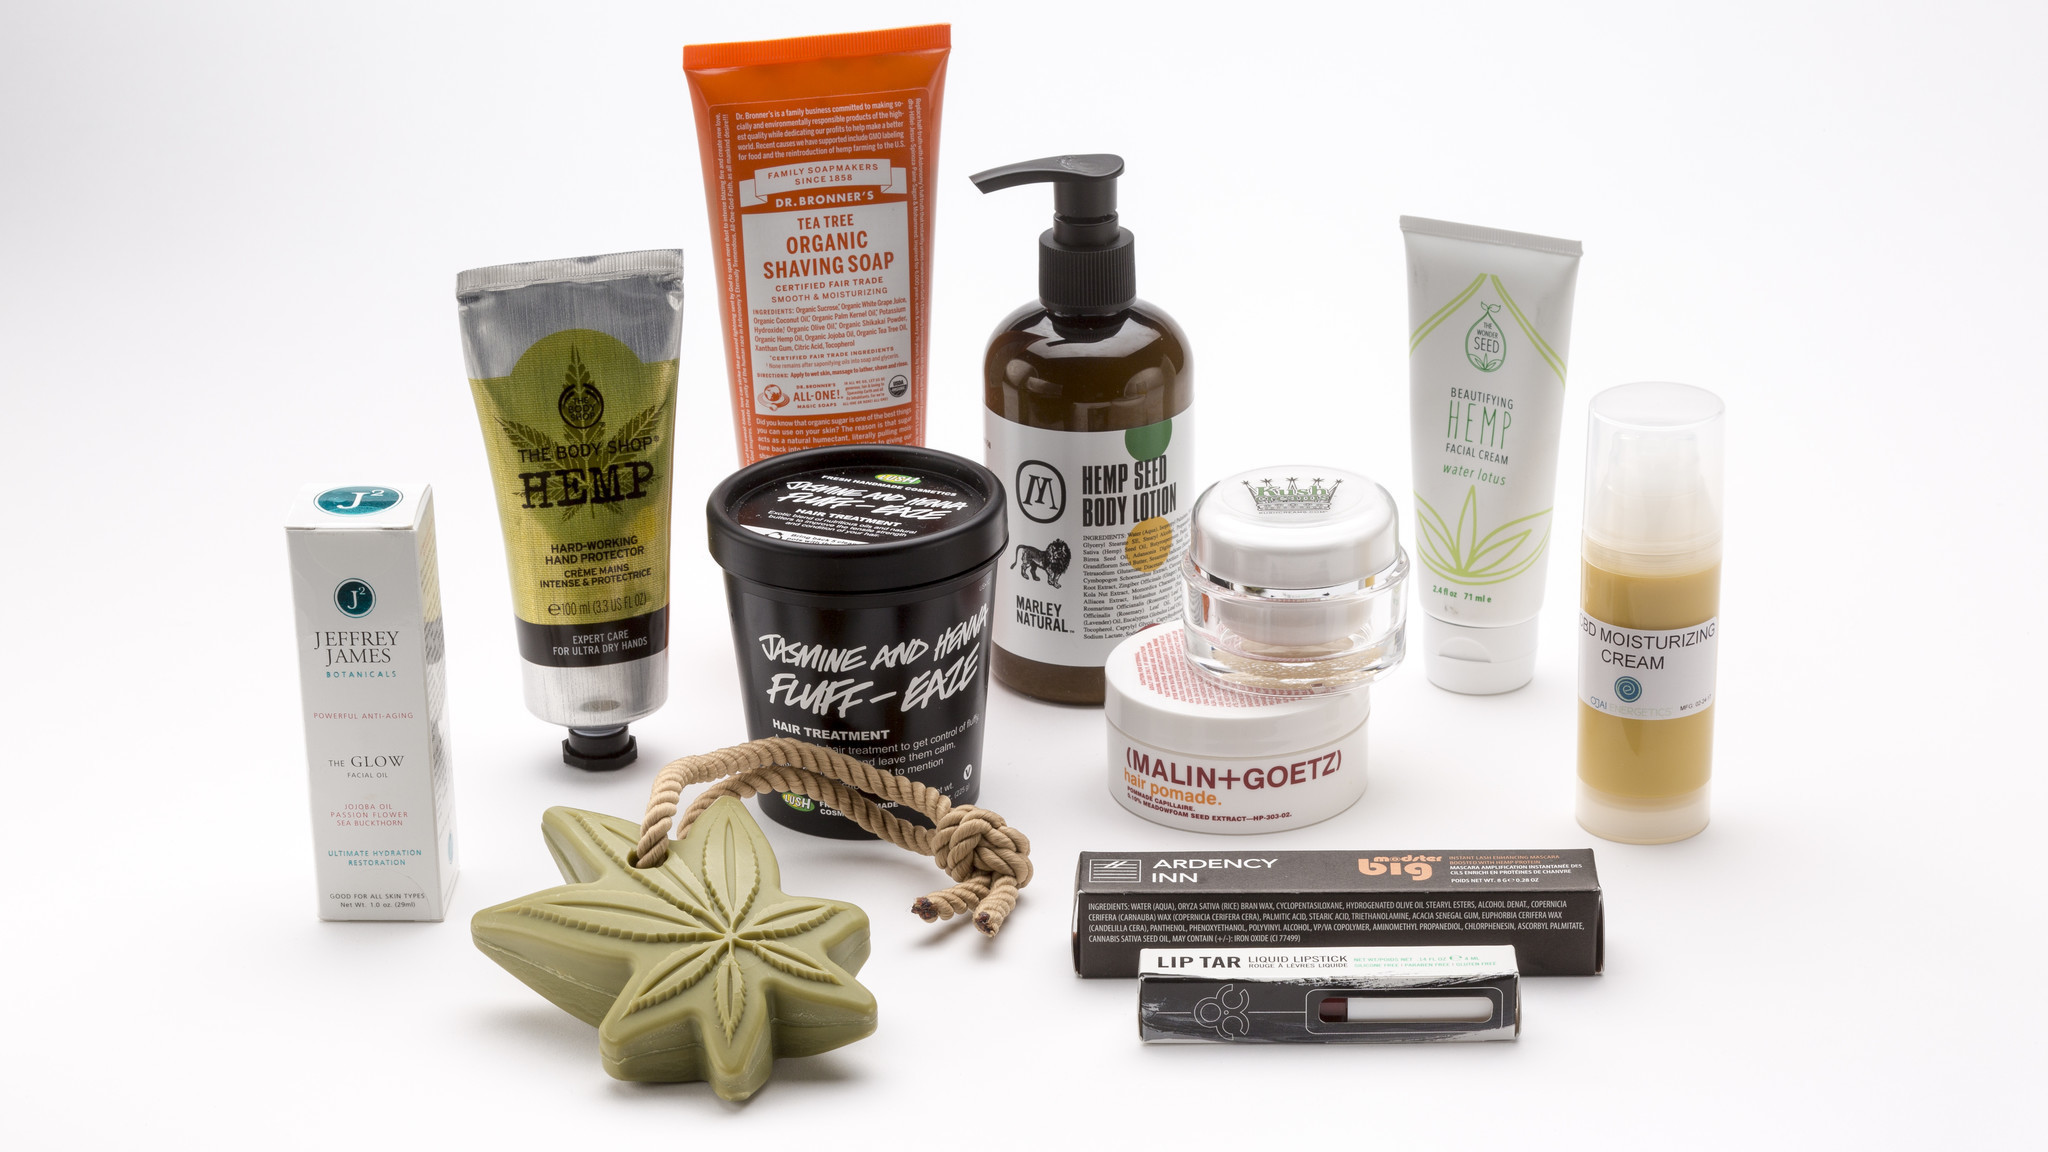 Products from hemp